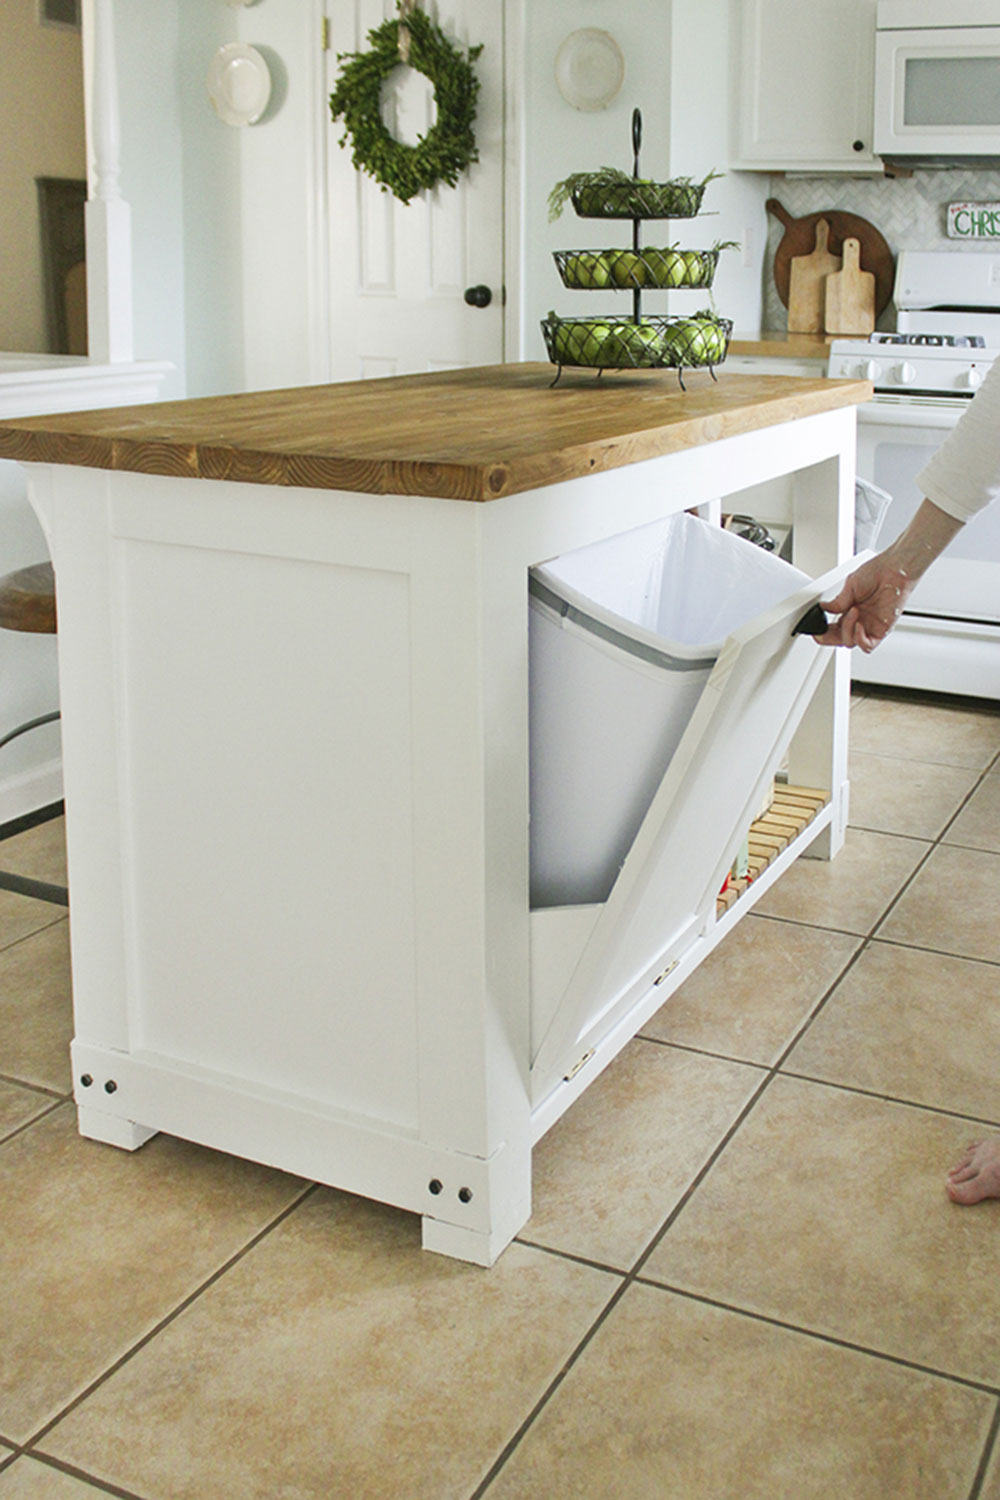 Built-in Trash Storage Island How To Build A Kitchen Island (17 Plans For DIY Kitchen Islands)